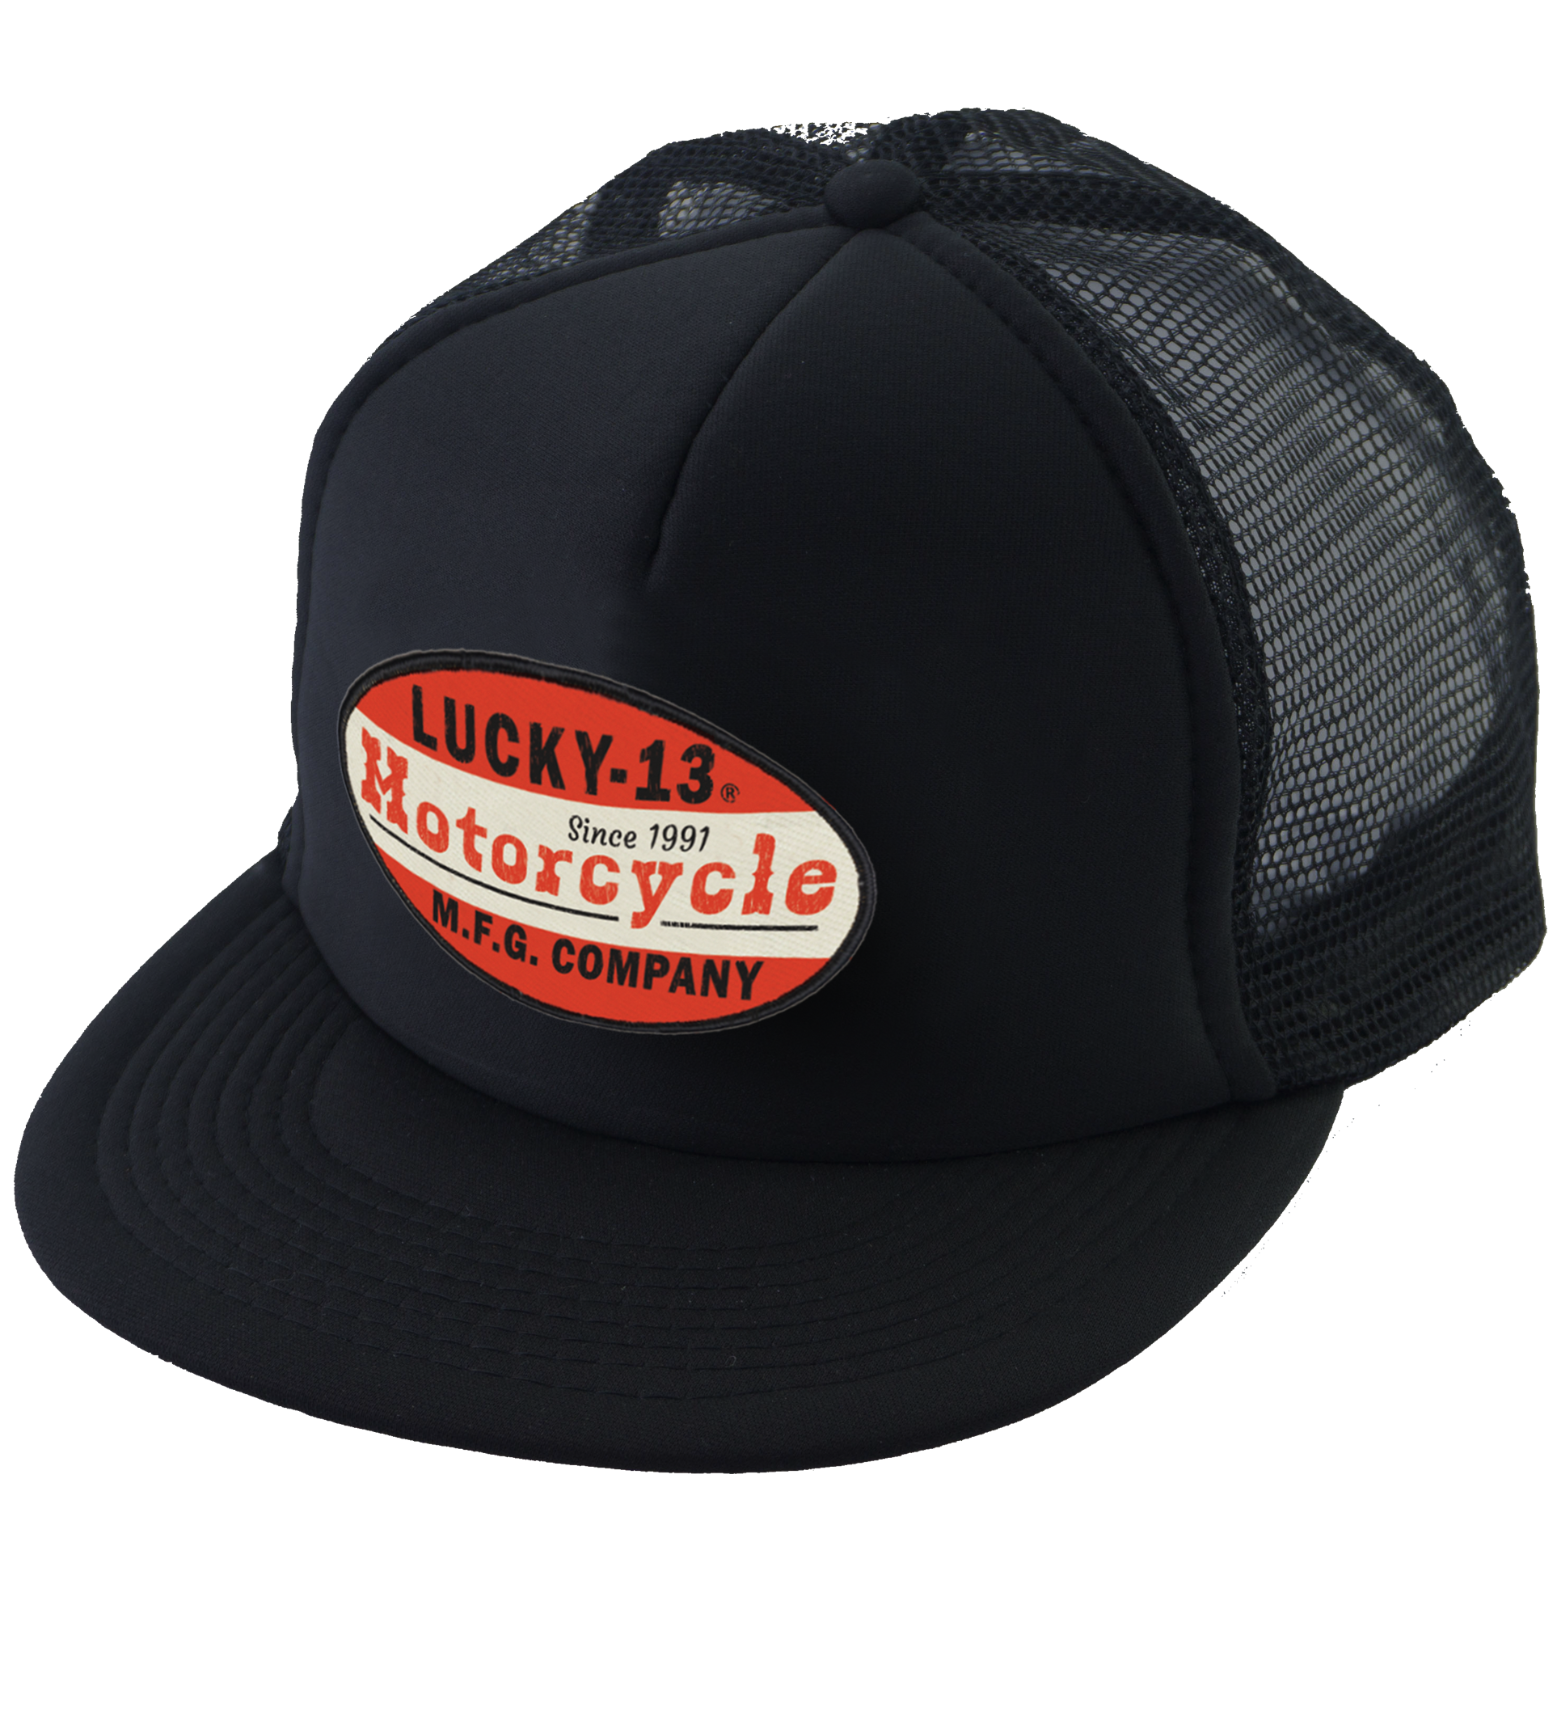 The MOTO 13 Trucker Cap - BLACK